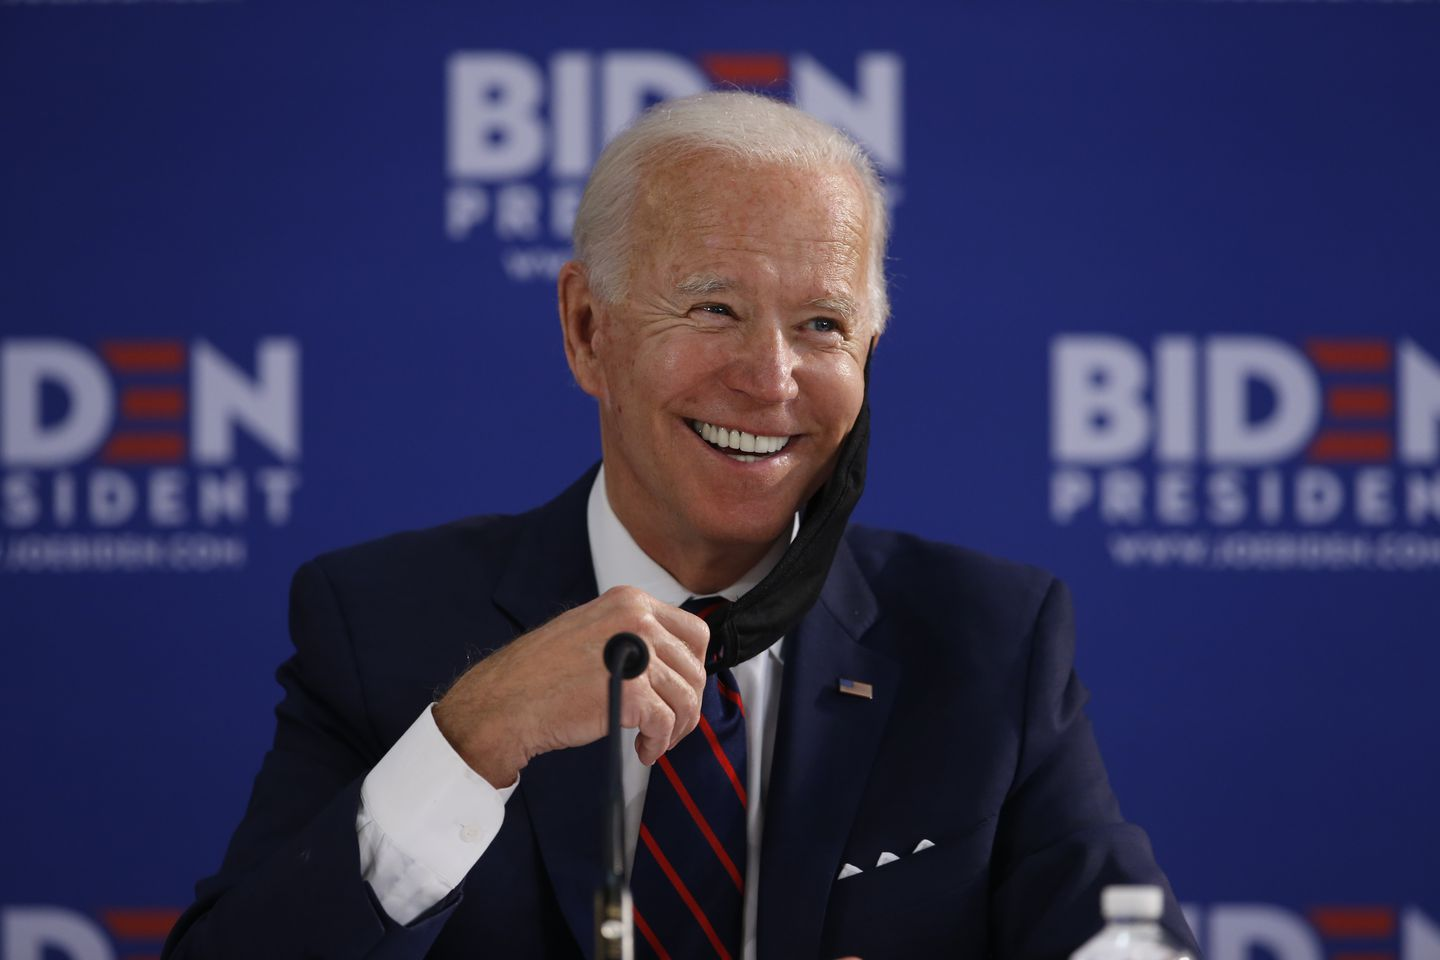 """joe-biden-delivers-powerful-and-inspiring-first-speech-as-the-new-president-swears-to-unite-the-divided-country"""